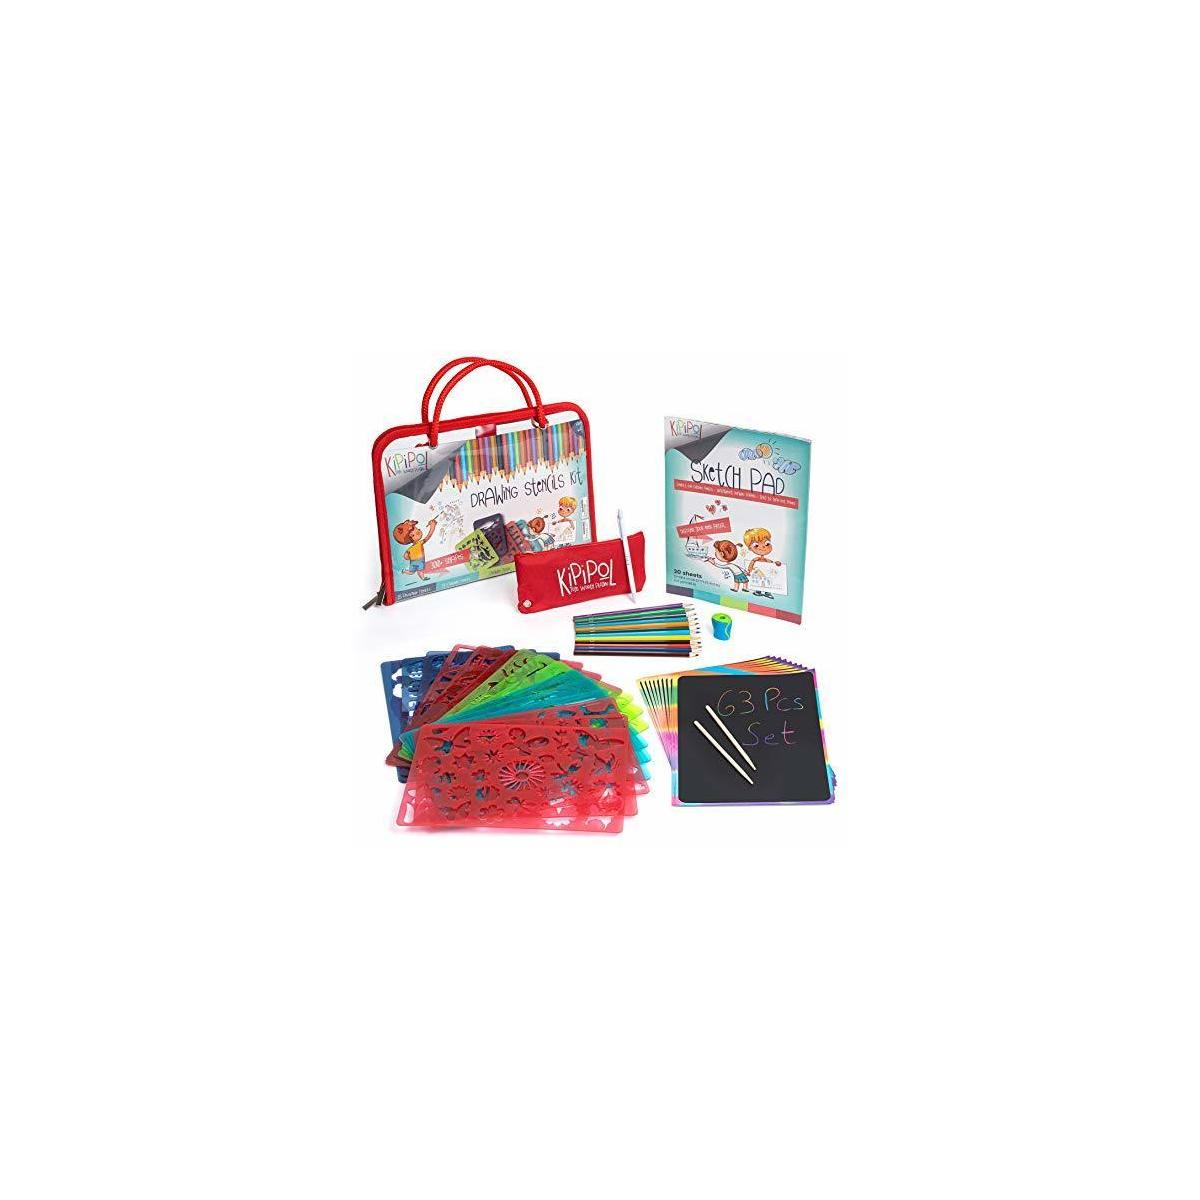 amazing  drawing kit for kids with 15 stenciles, scartch art, penciles and more. great set in the best price